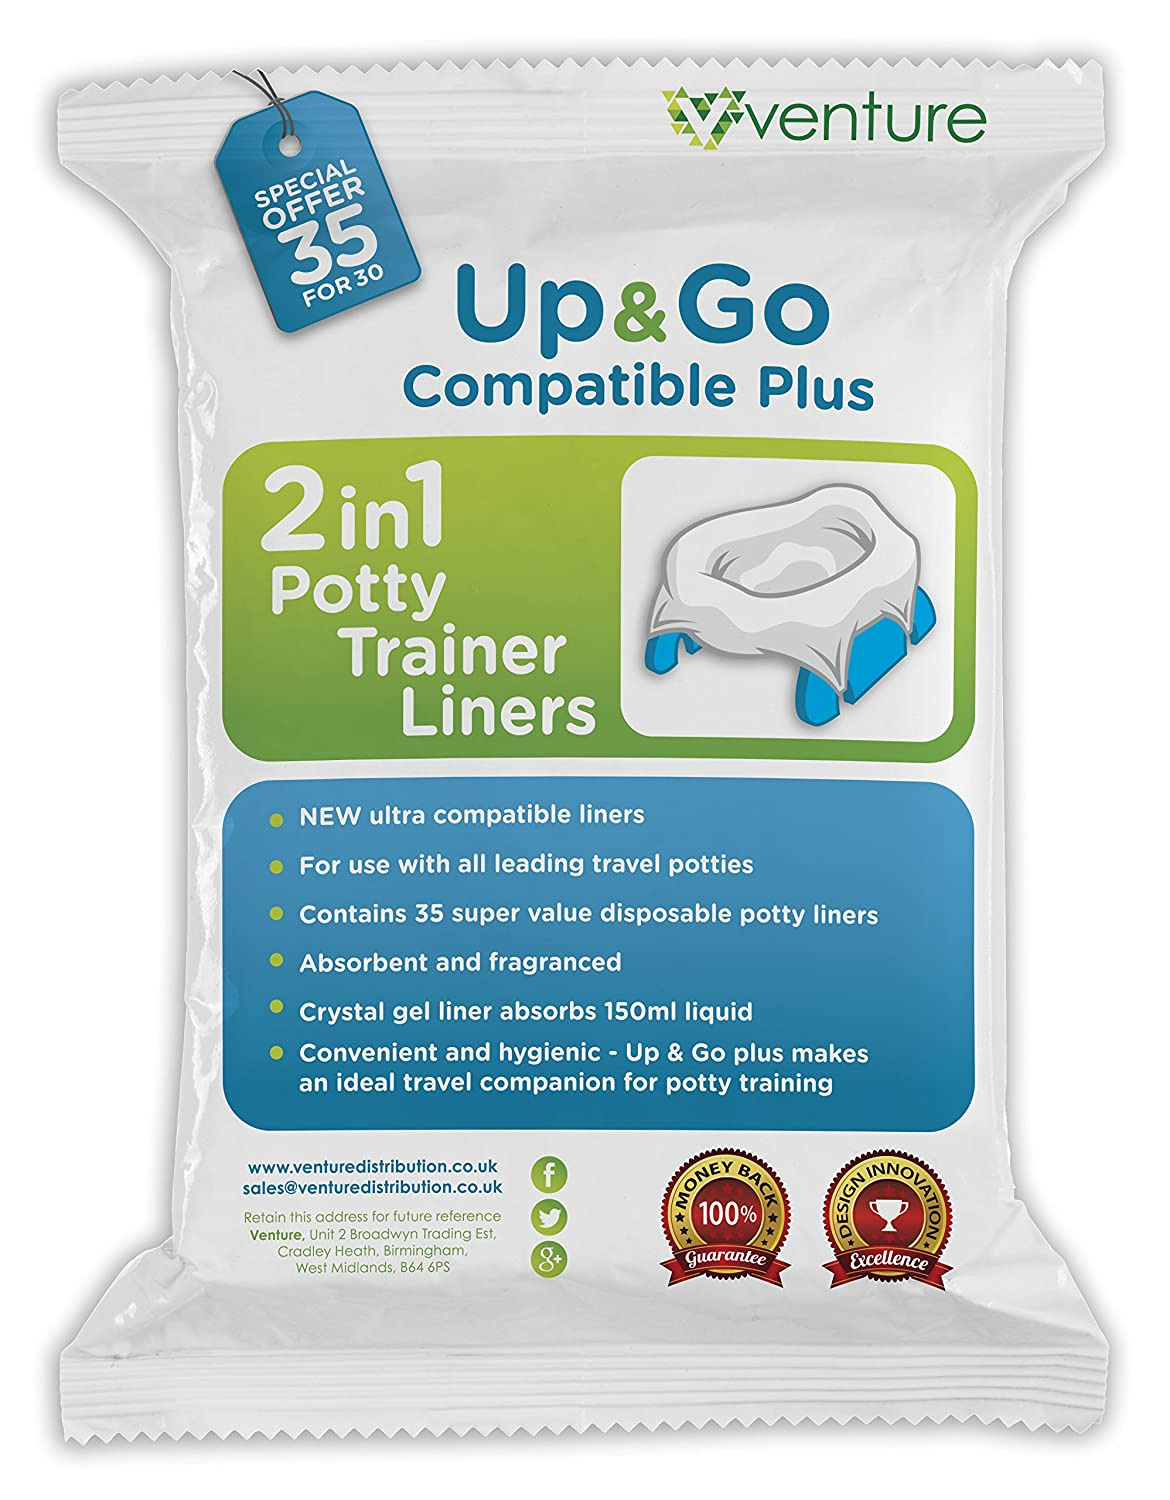 35 Pack 2-in-1 portable potty Liners, Suitable For Use With Leading Travel Potties and Pote Plus, Get 35 Up & Go Travel Liner Venture Up & Go | 35